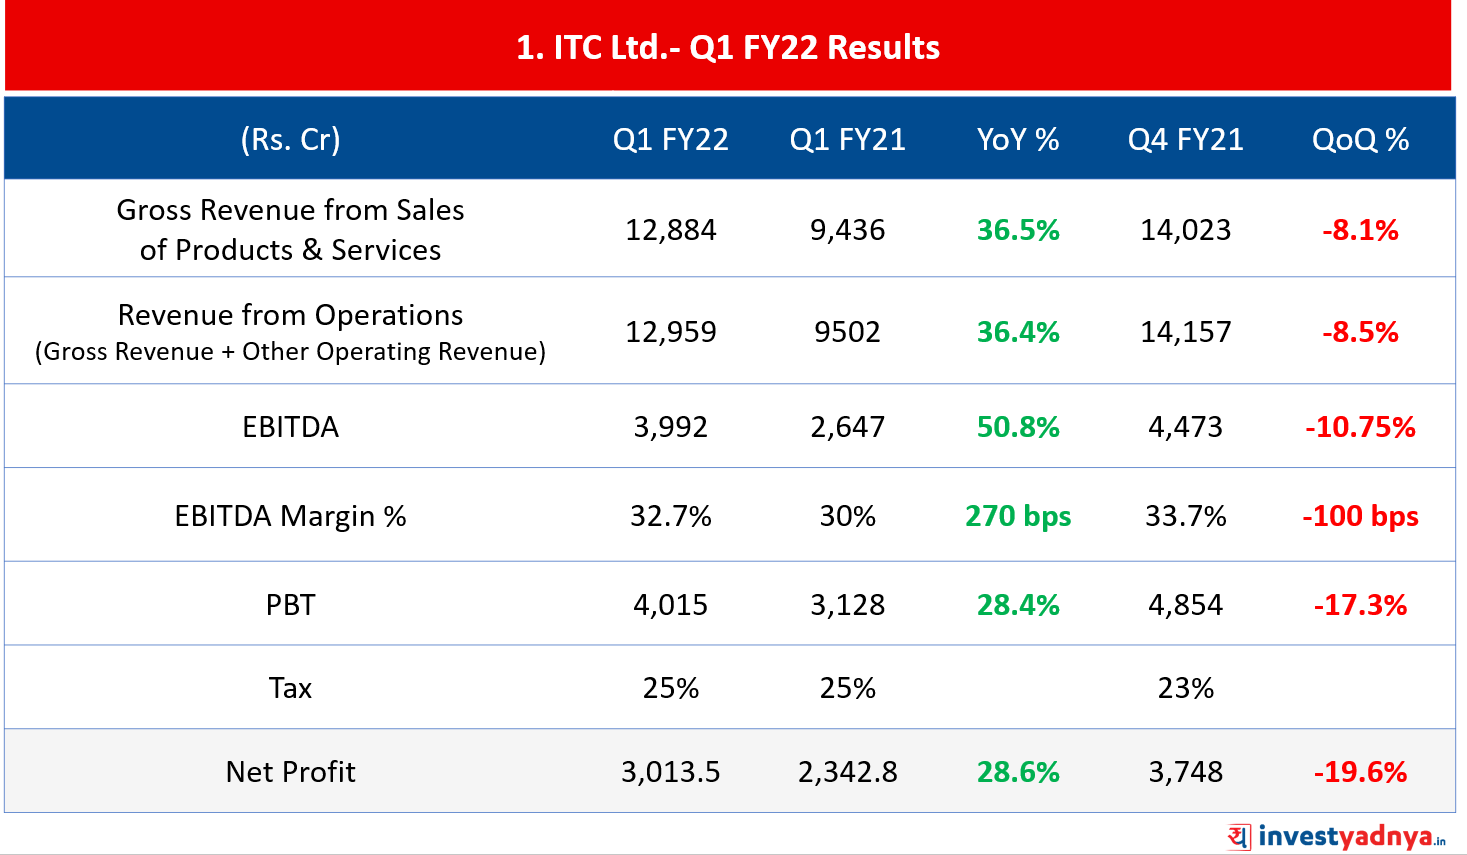 ITC Limited- Q1FY22 Result